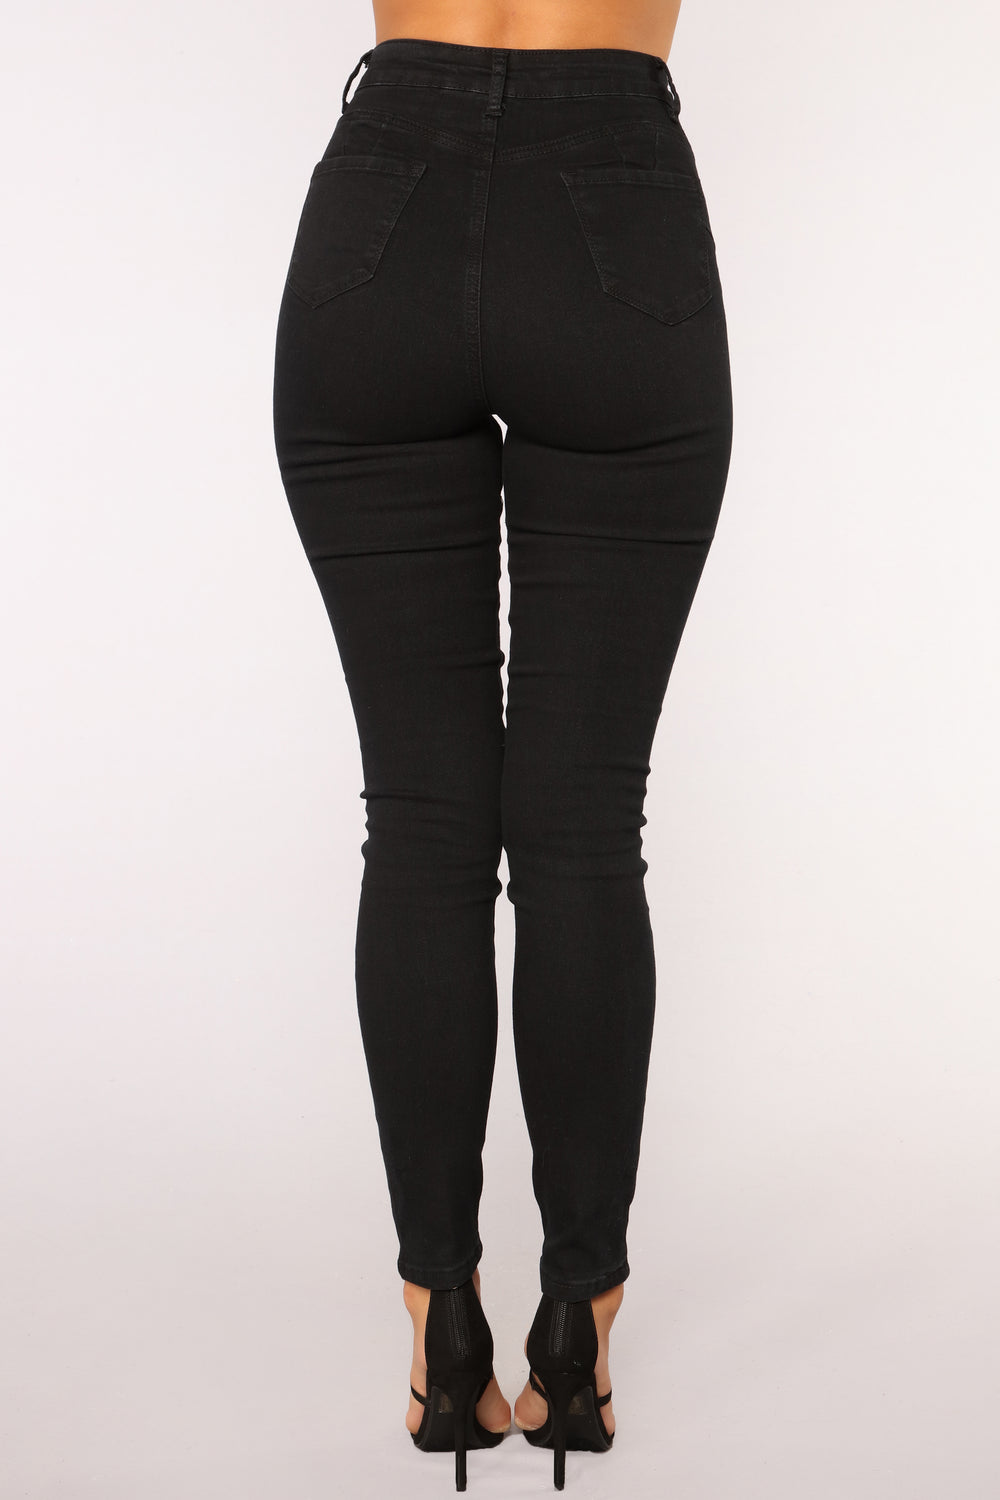 Times Running Out Skinny Jeans - Black